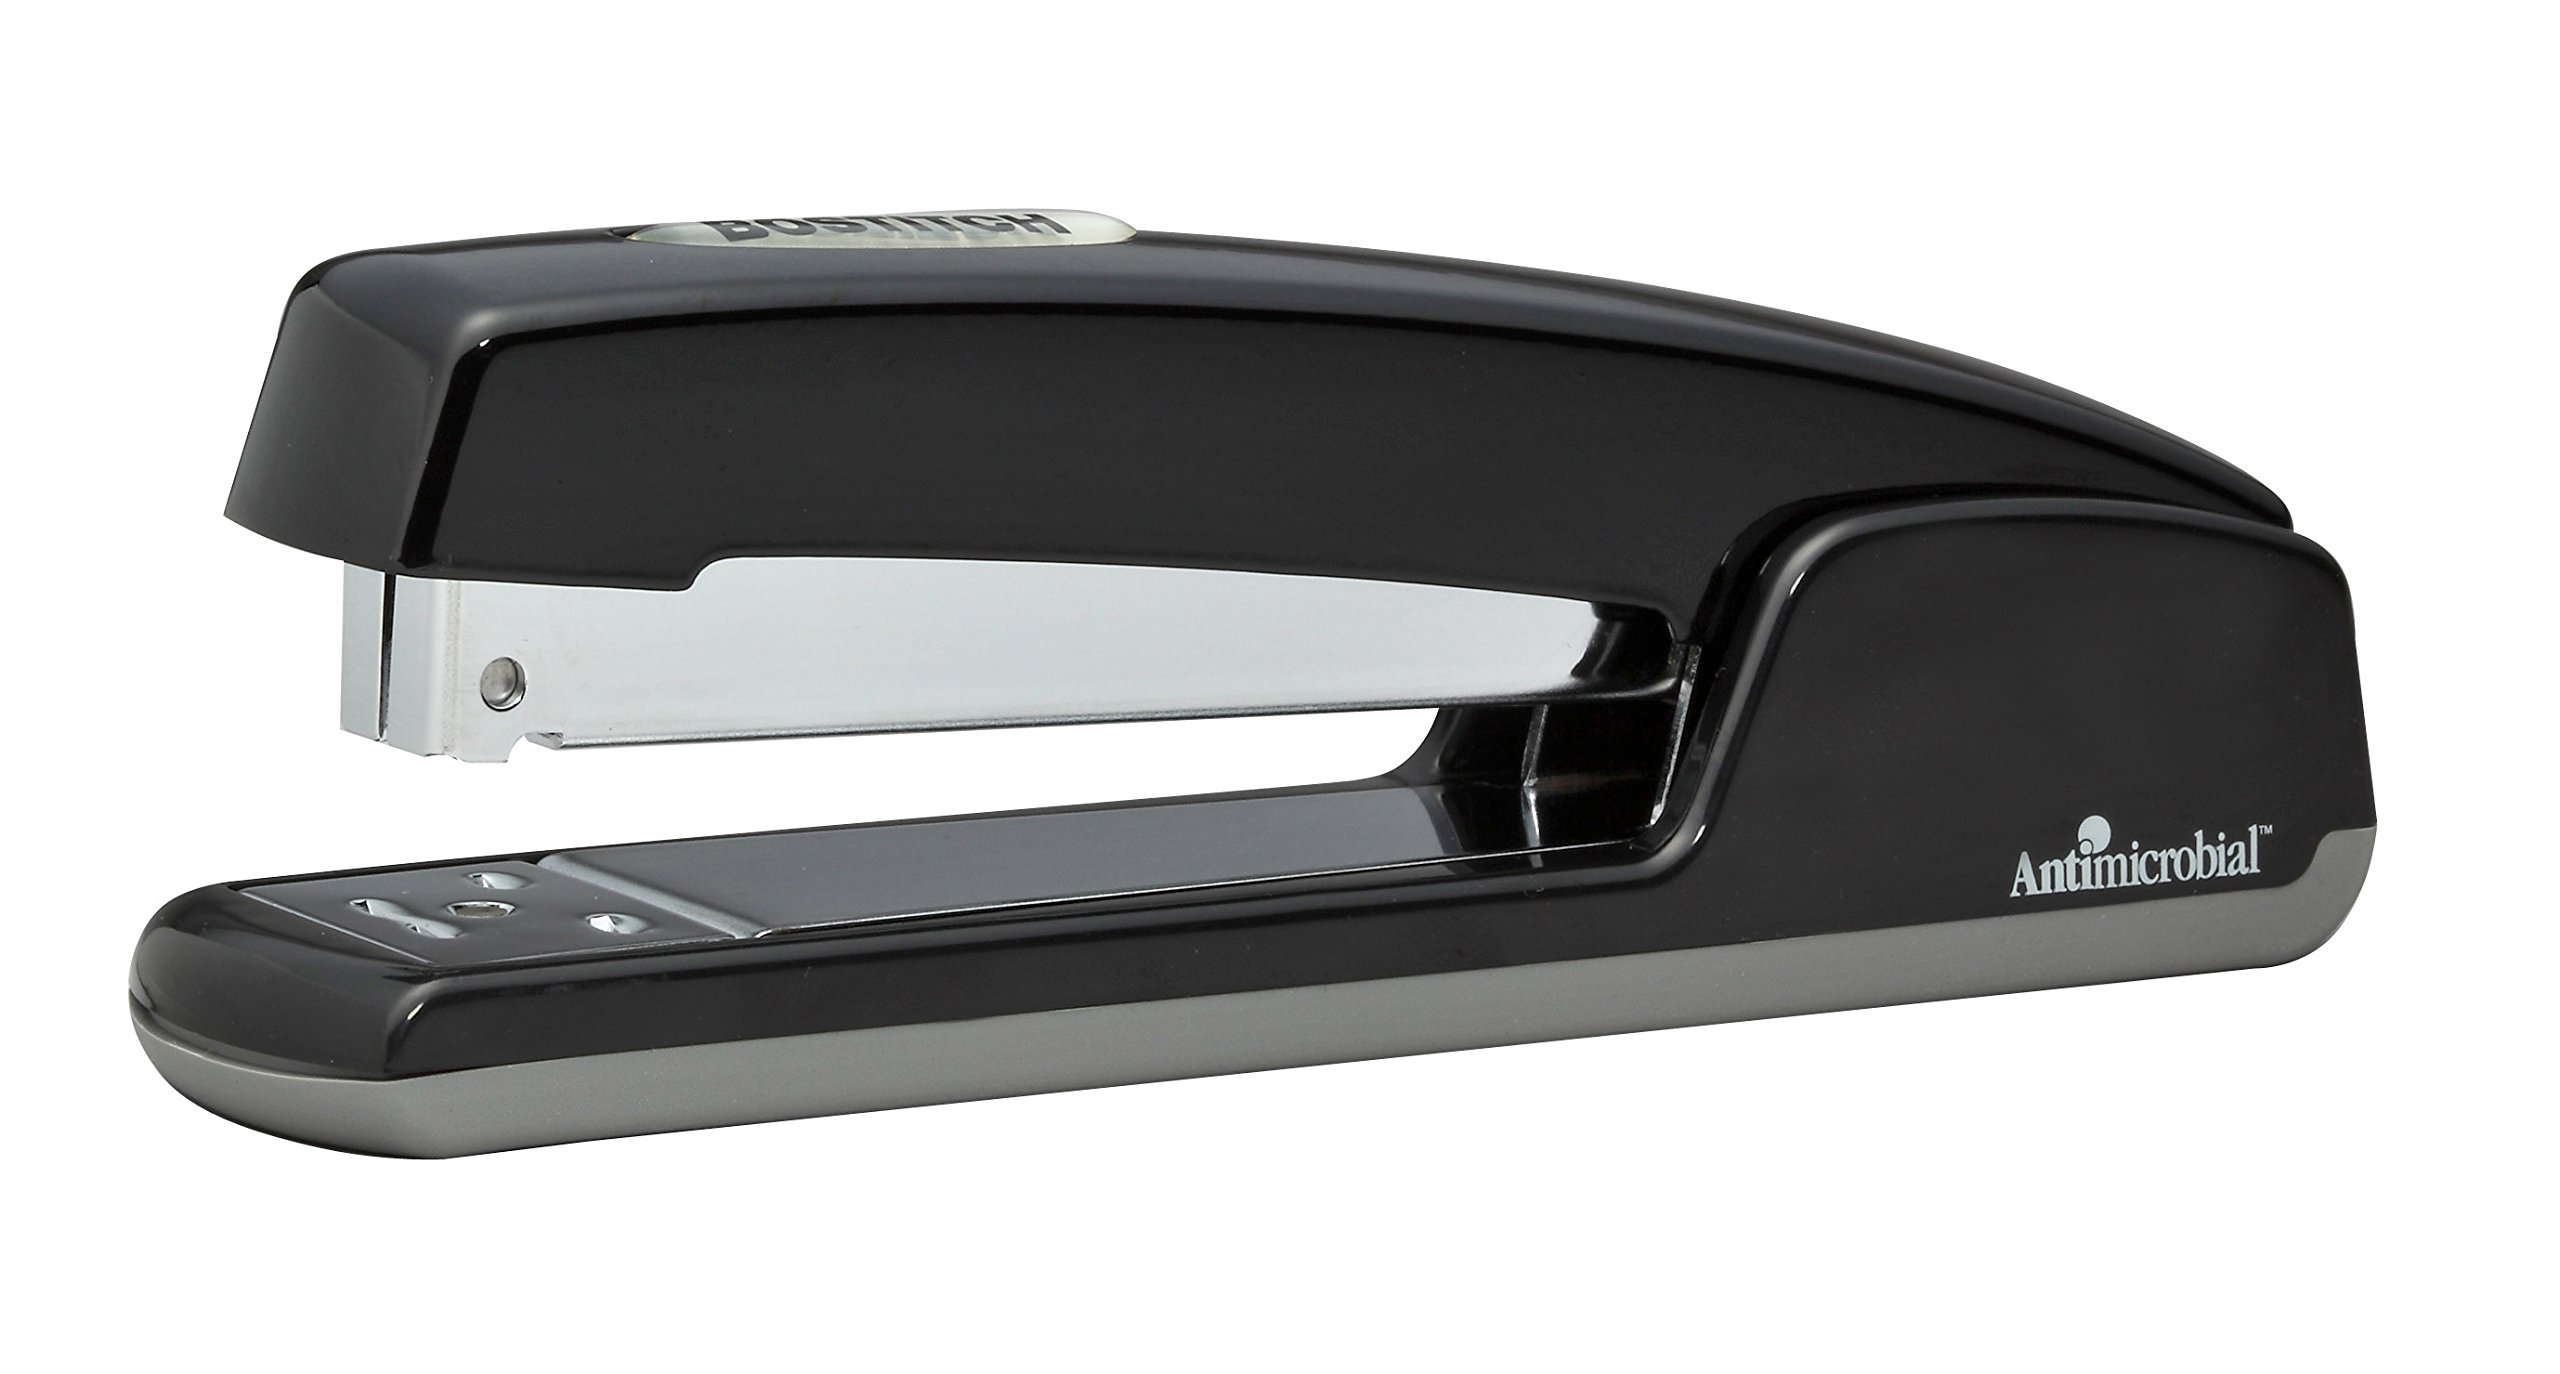 Bostitch Professional Antimicrobial Metal Executive Stapler, Black (B5000-BLACK)